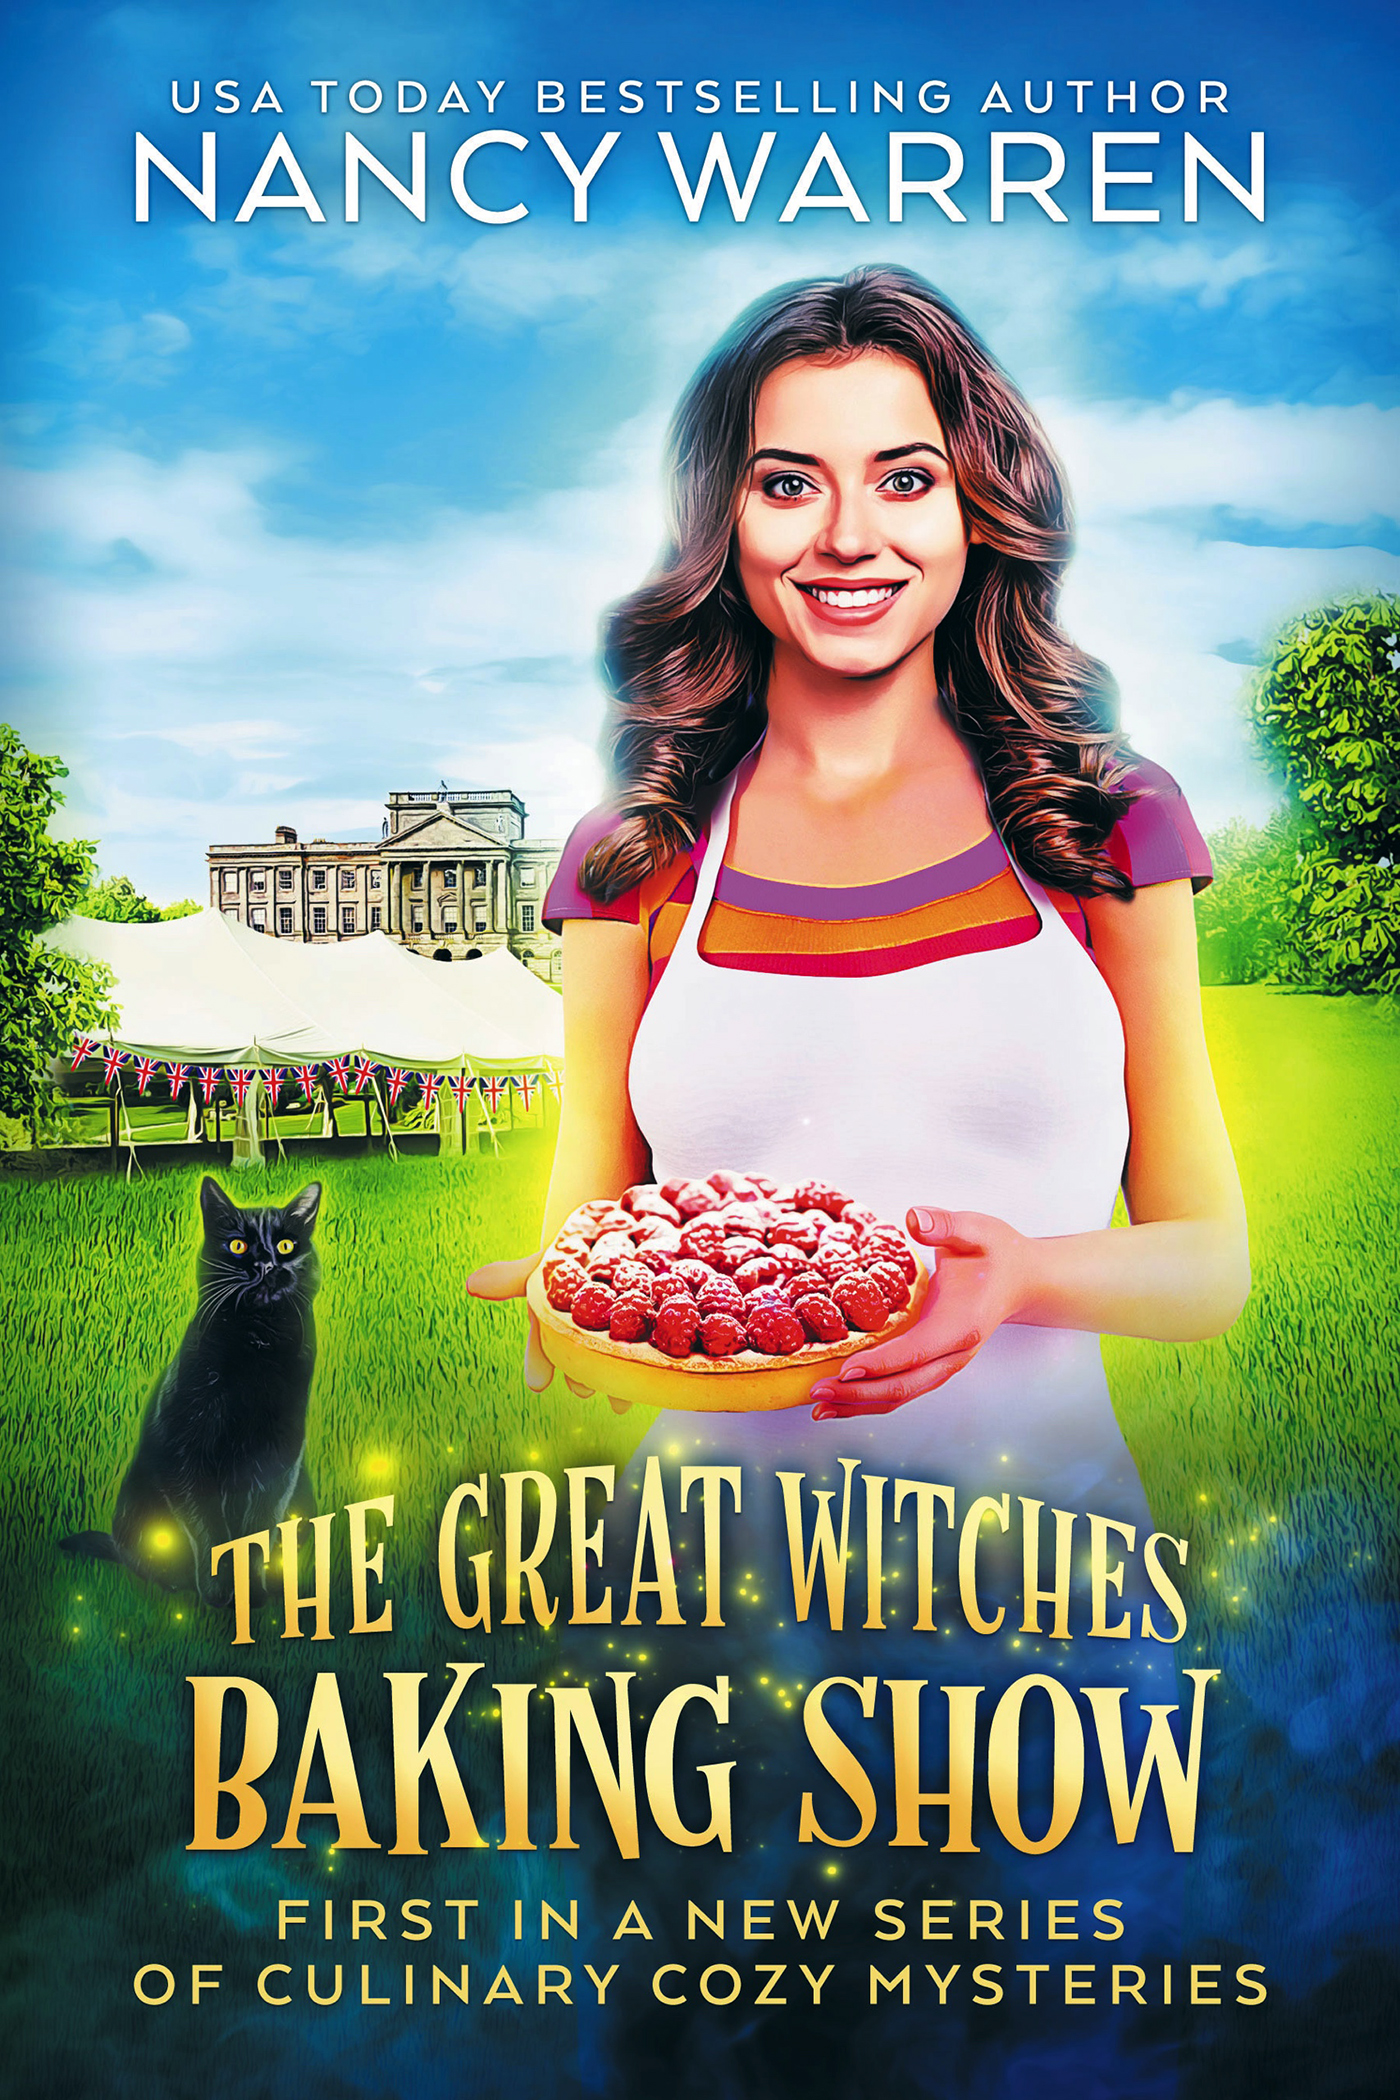 The Great Witches Baking Show (The Great Witches Baking Show Book 1)